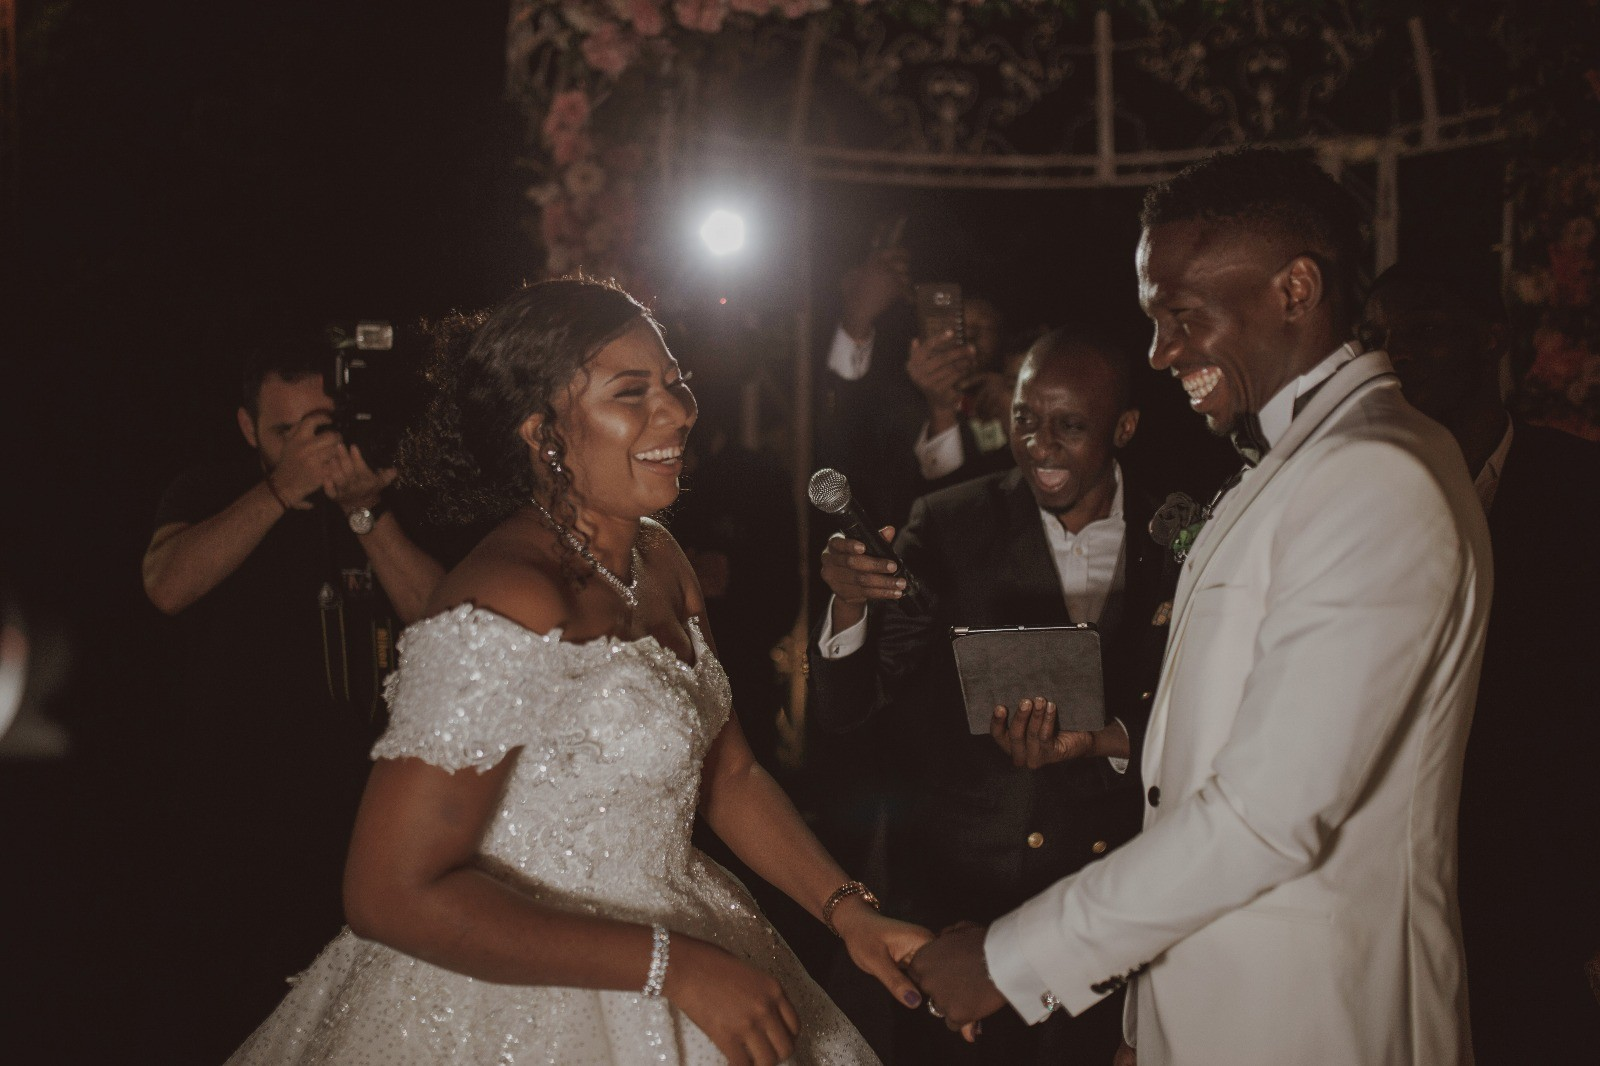 5afbbff8d2e9c - Photos From Kenneth Omeruo's White Wedding In Istanbul, Turkey